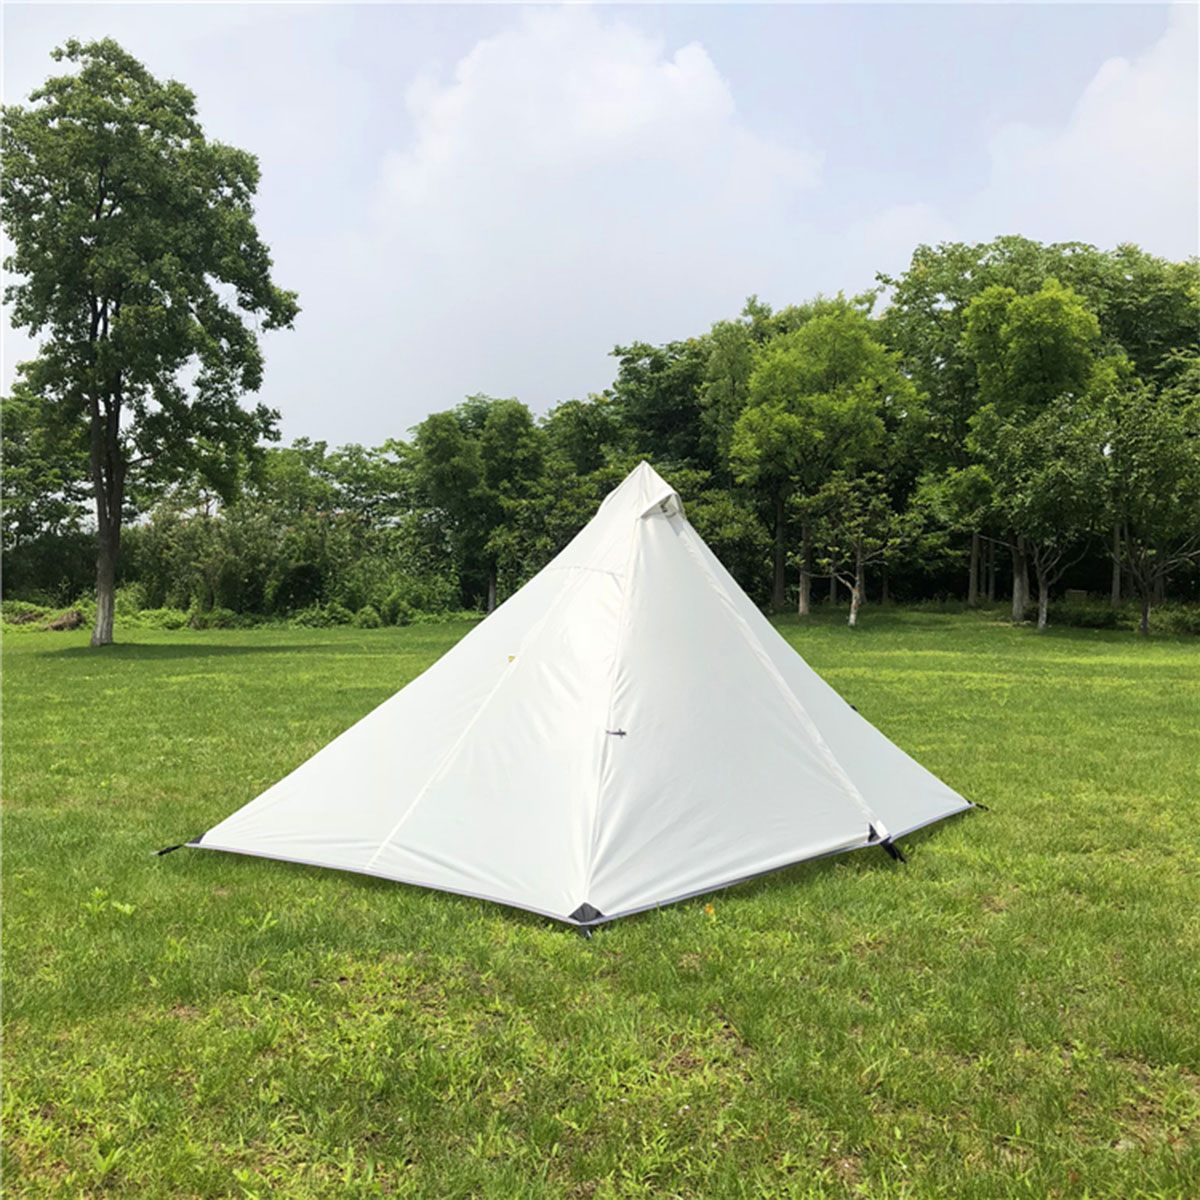 210T Oudoor Person Pyramid Tent Rodless Backpacking Waterproof Lightweight Hiking Camping Hiking Fishing Ultralight Tents